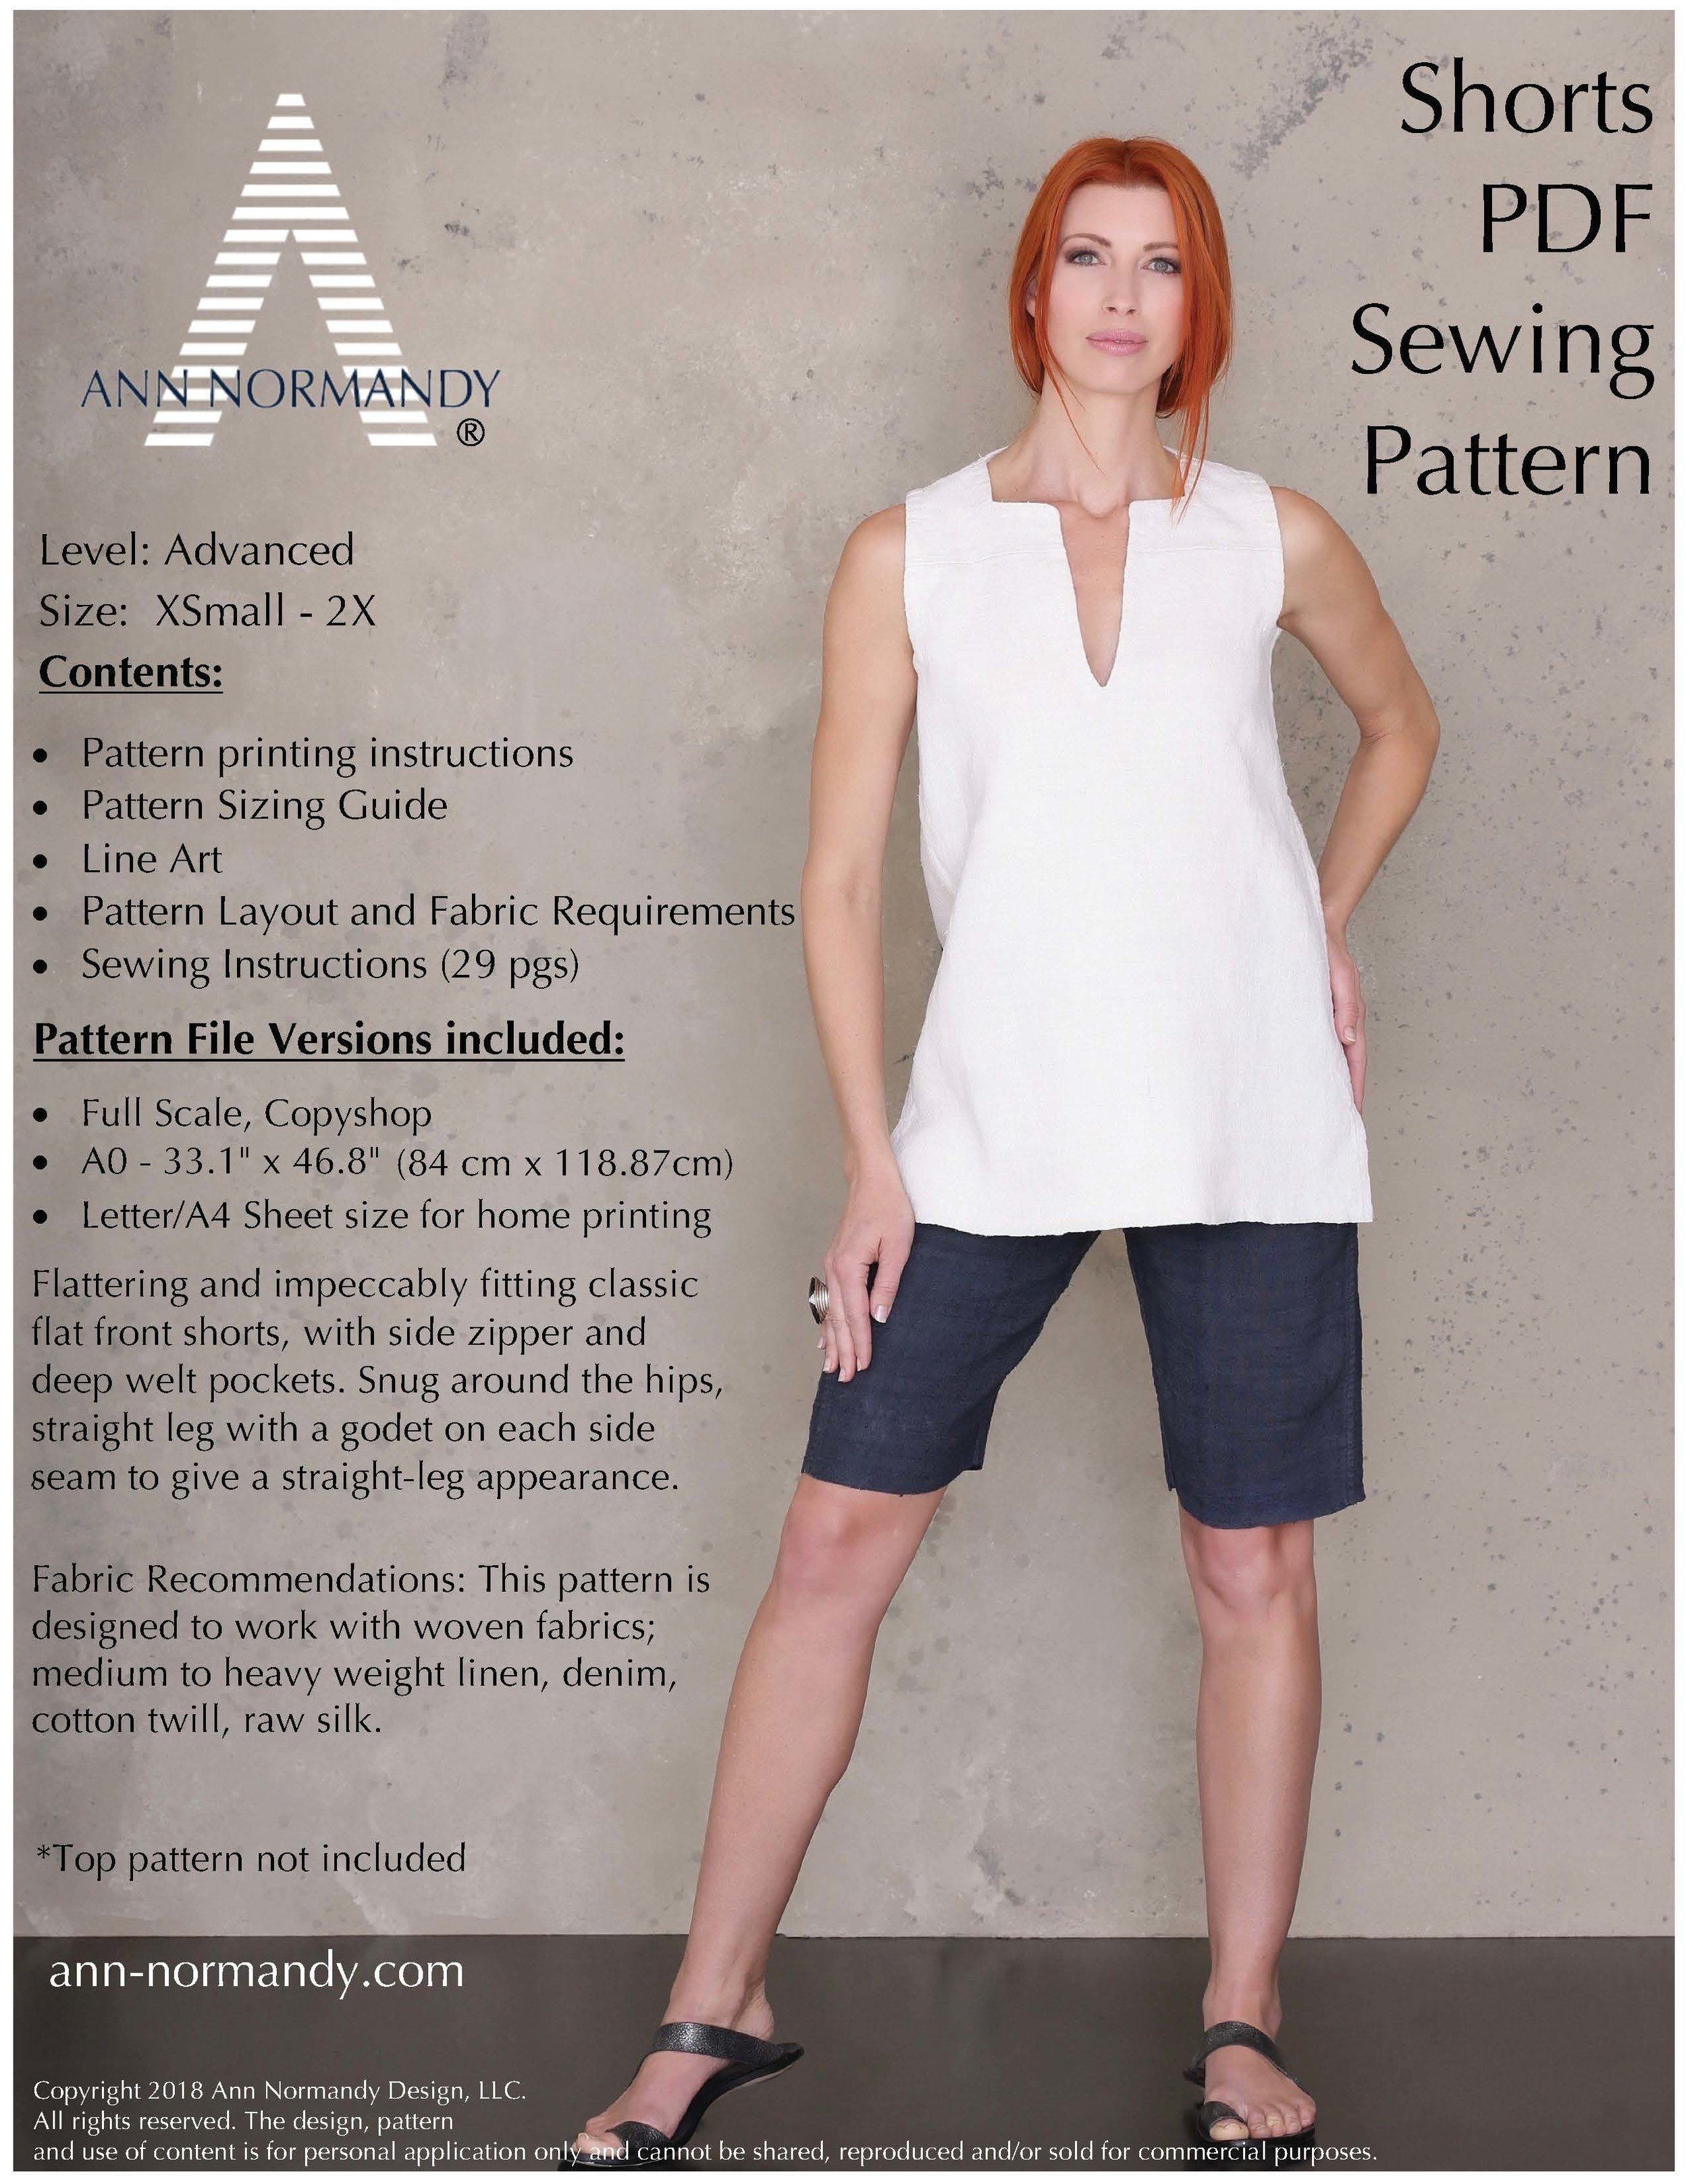 Coming soon, Ann Normandy Design Shorts PDF sewing pattern!